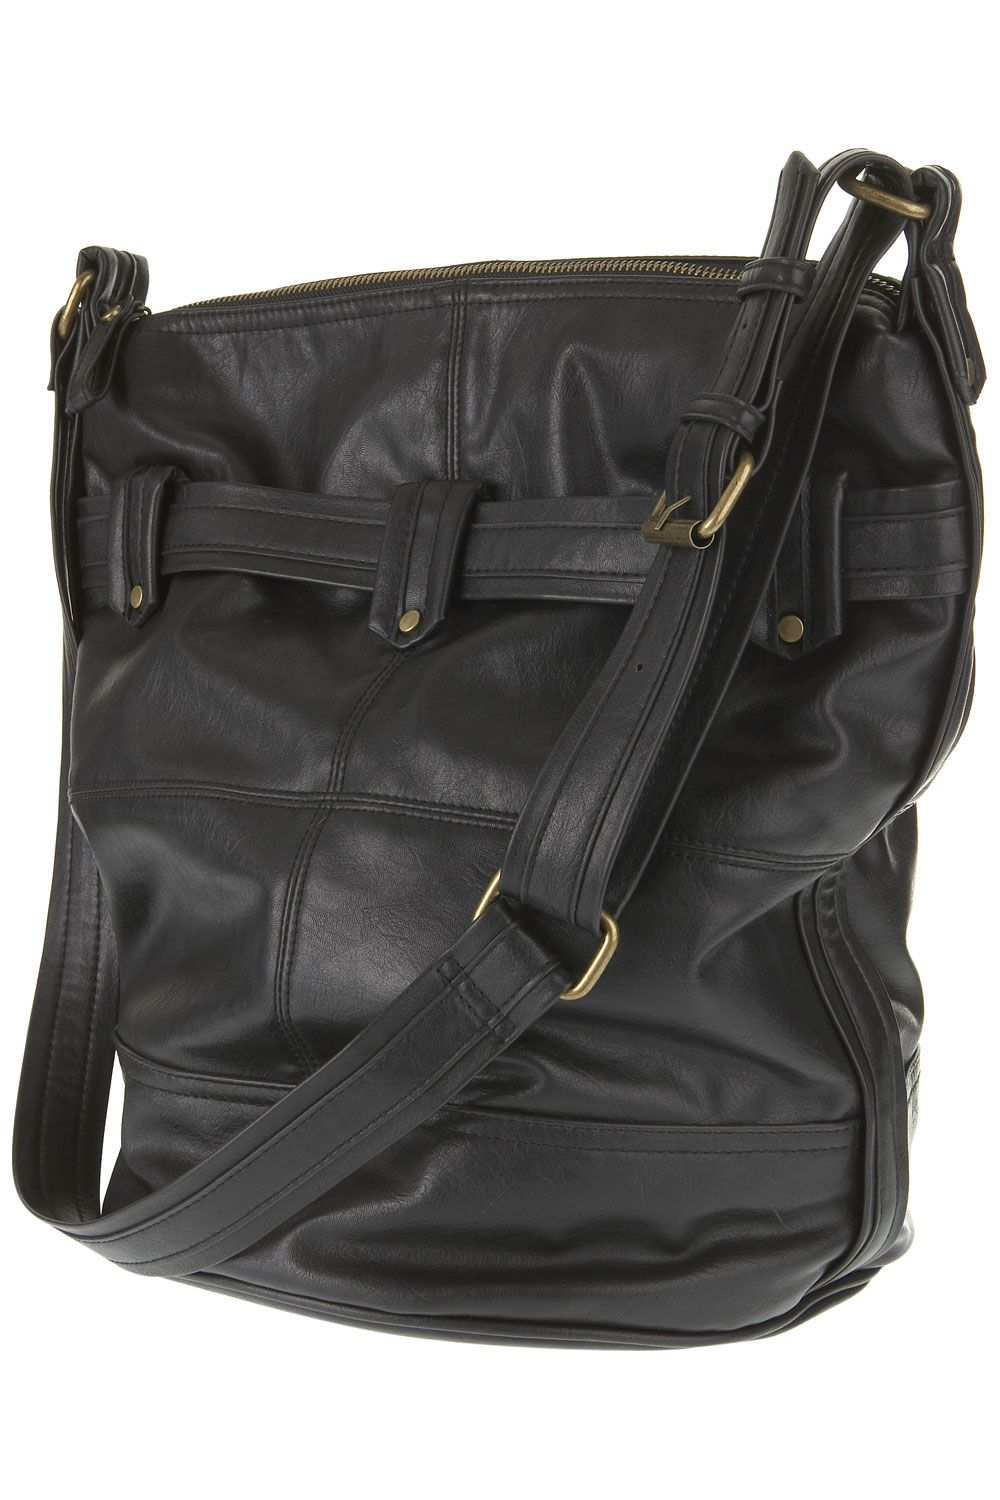 Warehouse Folded tabs bucket bag Black product image